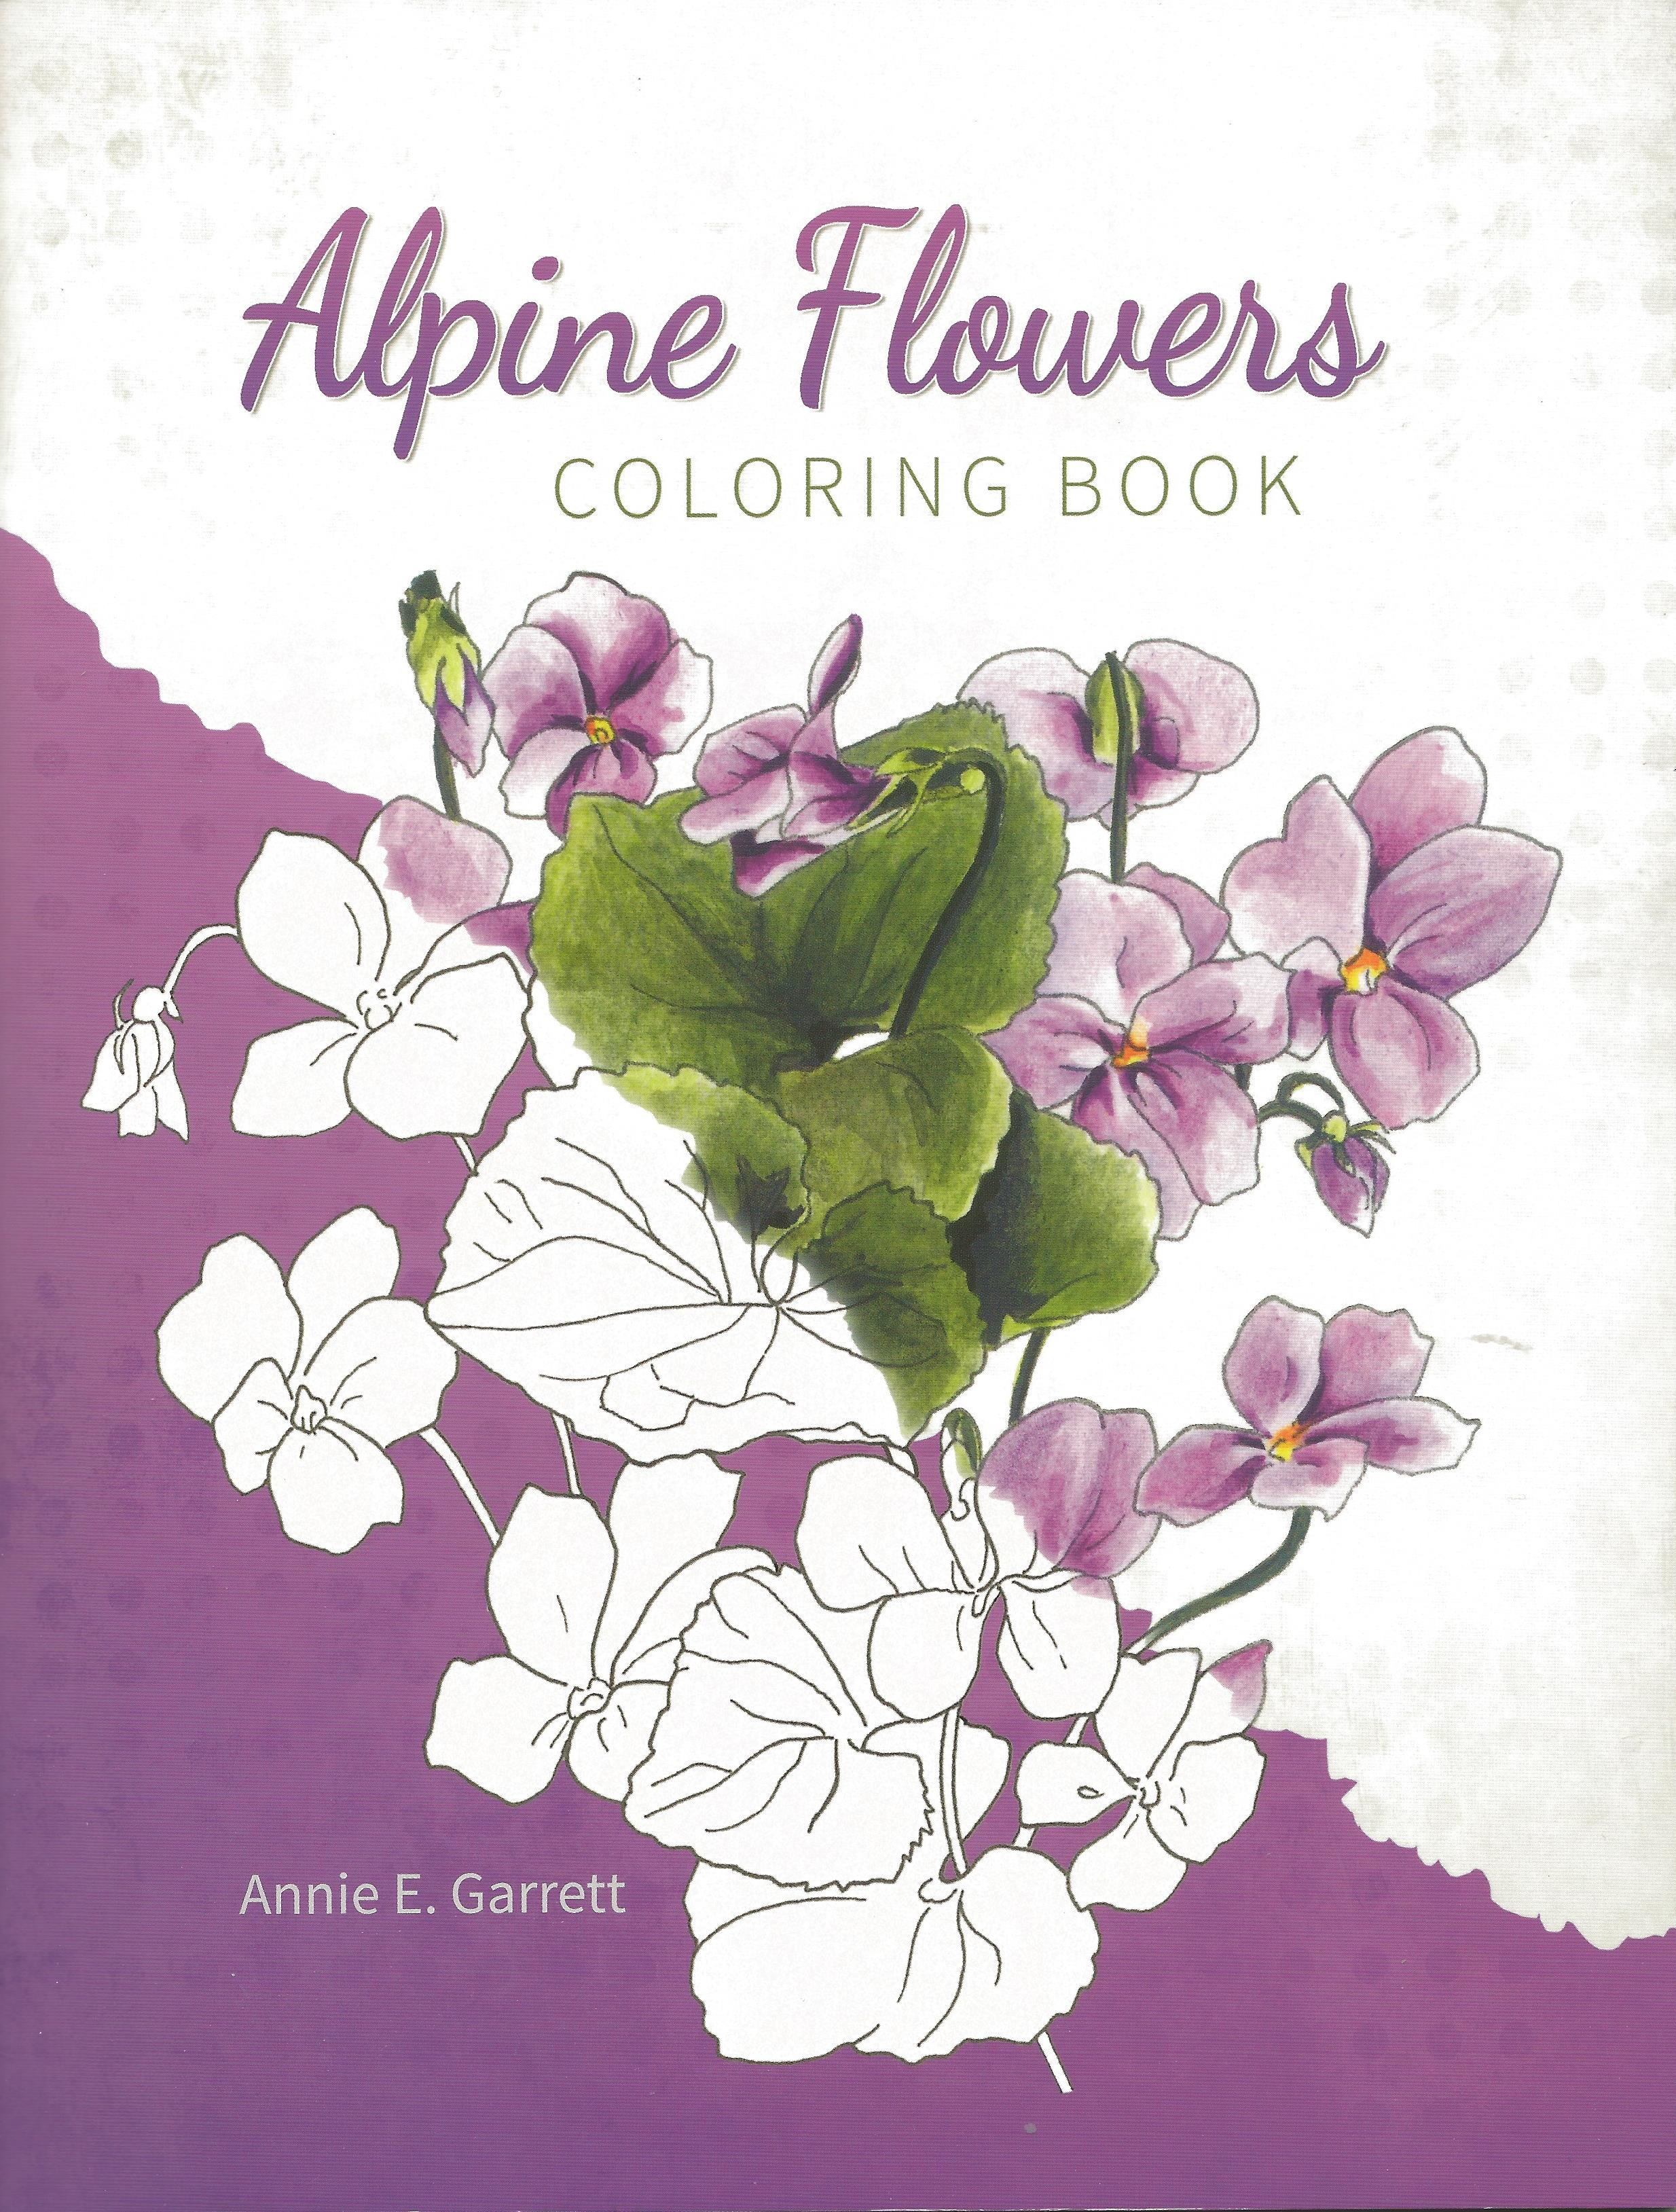 ALPINE FLOWERS COLORING BOOK Annie E. Garrett